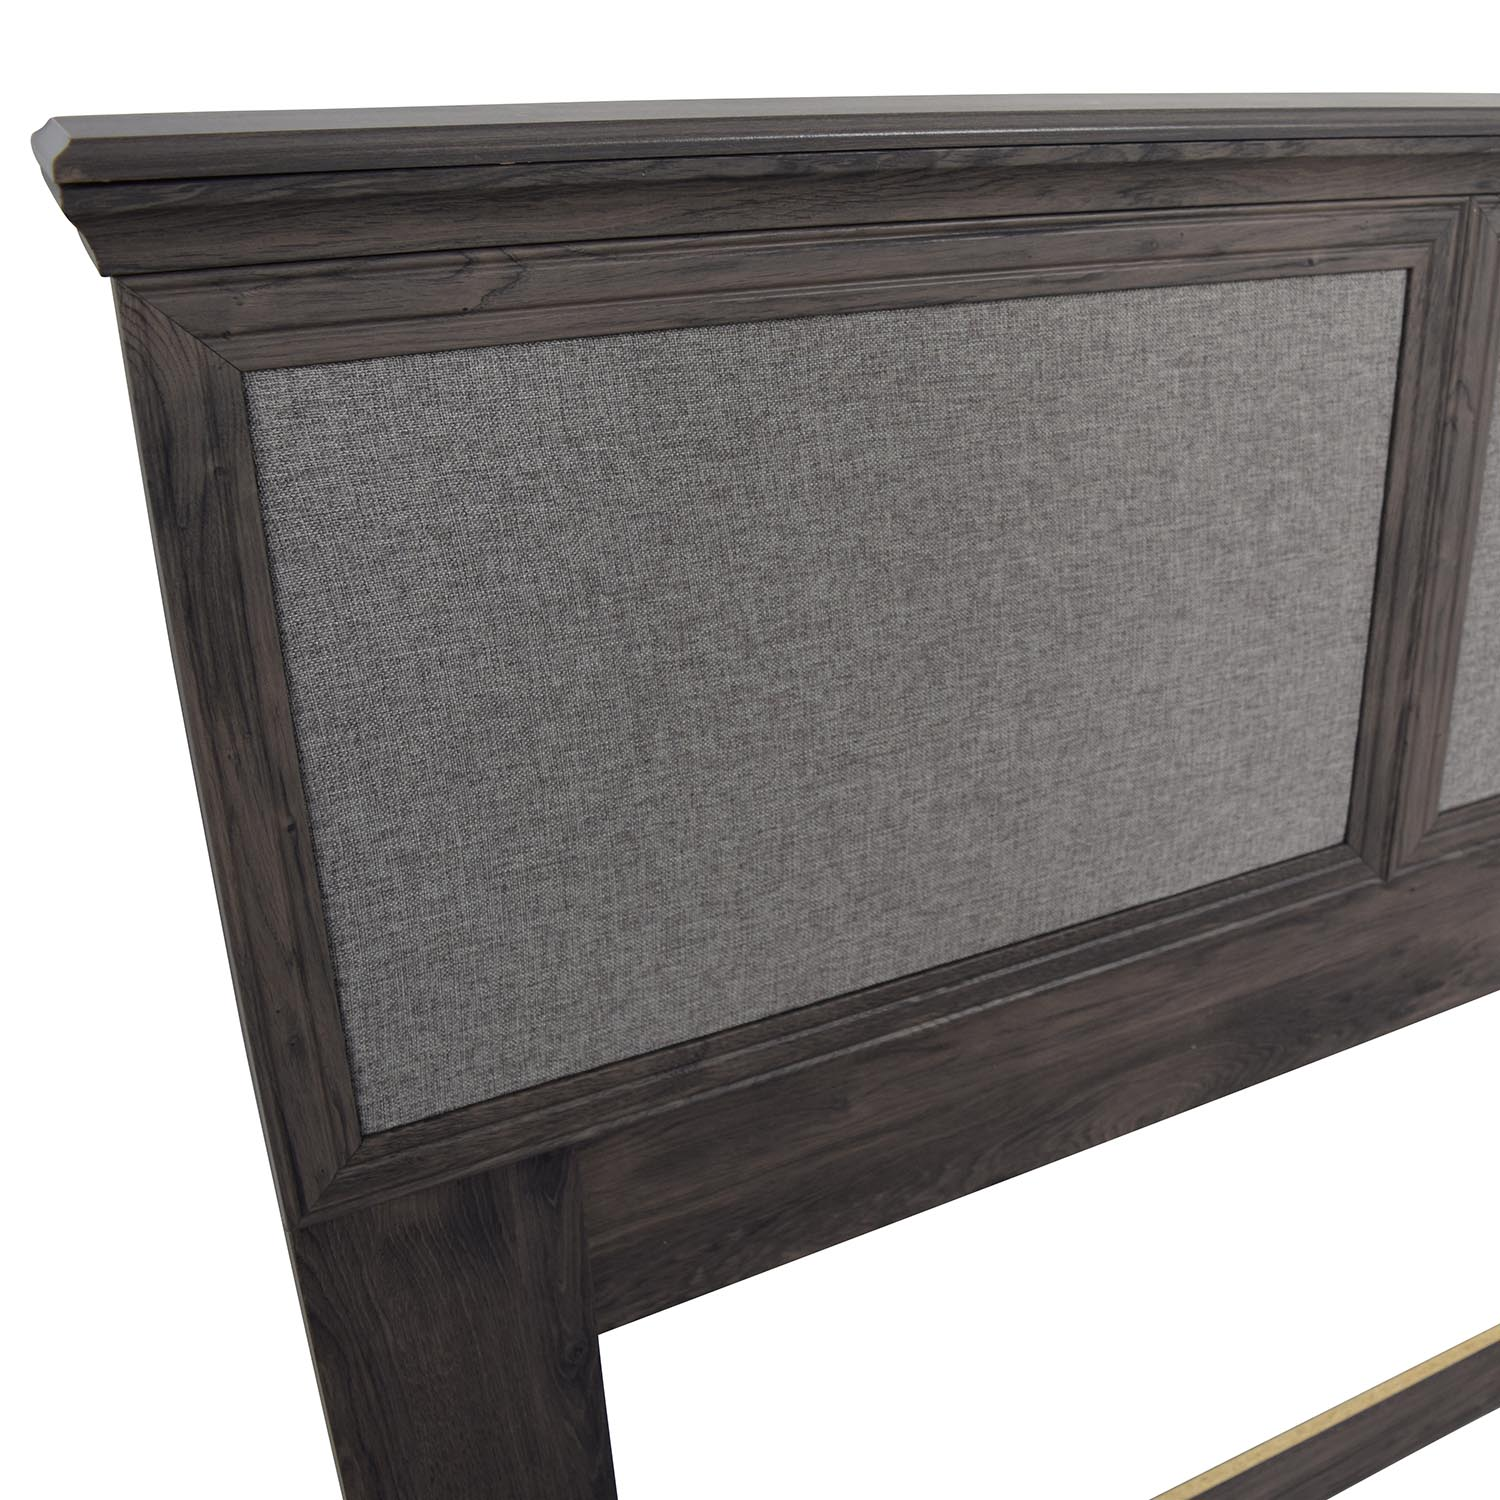 Off Grey Rustic Wood Upholstered Headboard Beds